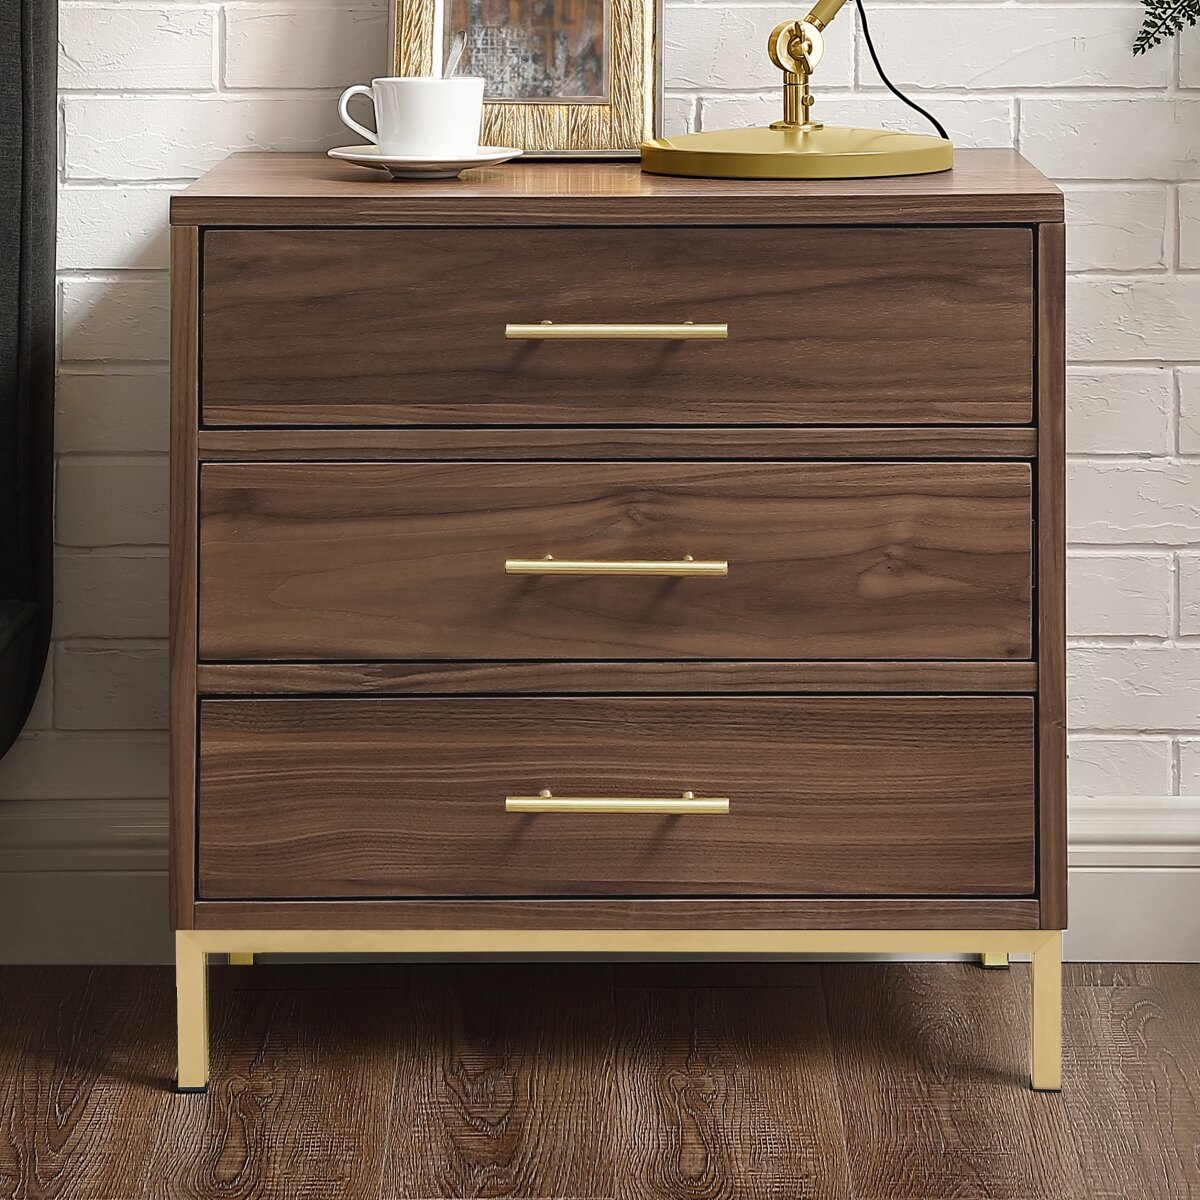 Nightstands Drawer Organizer Store Cabinet With LED Light Meubles